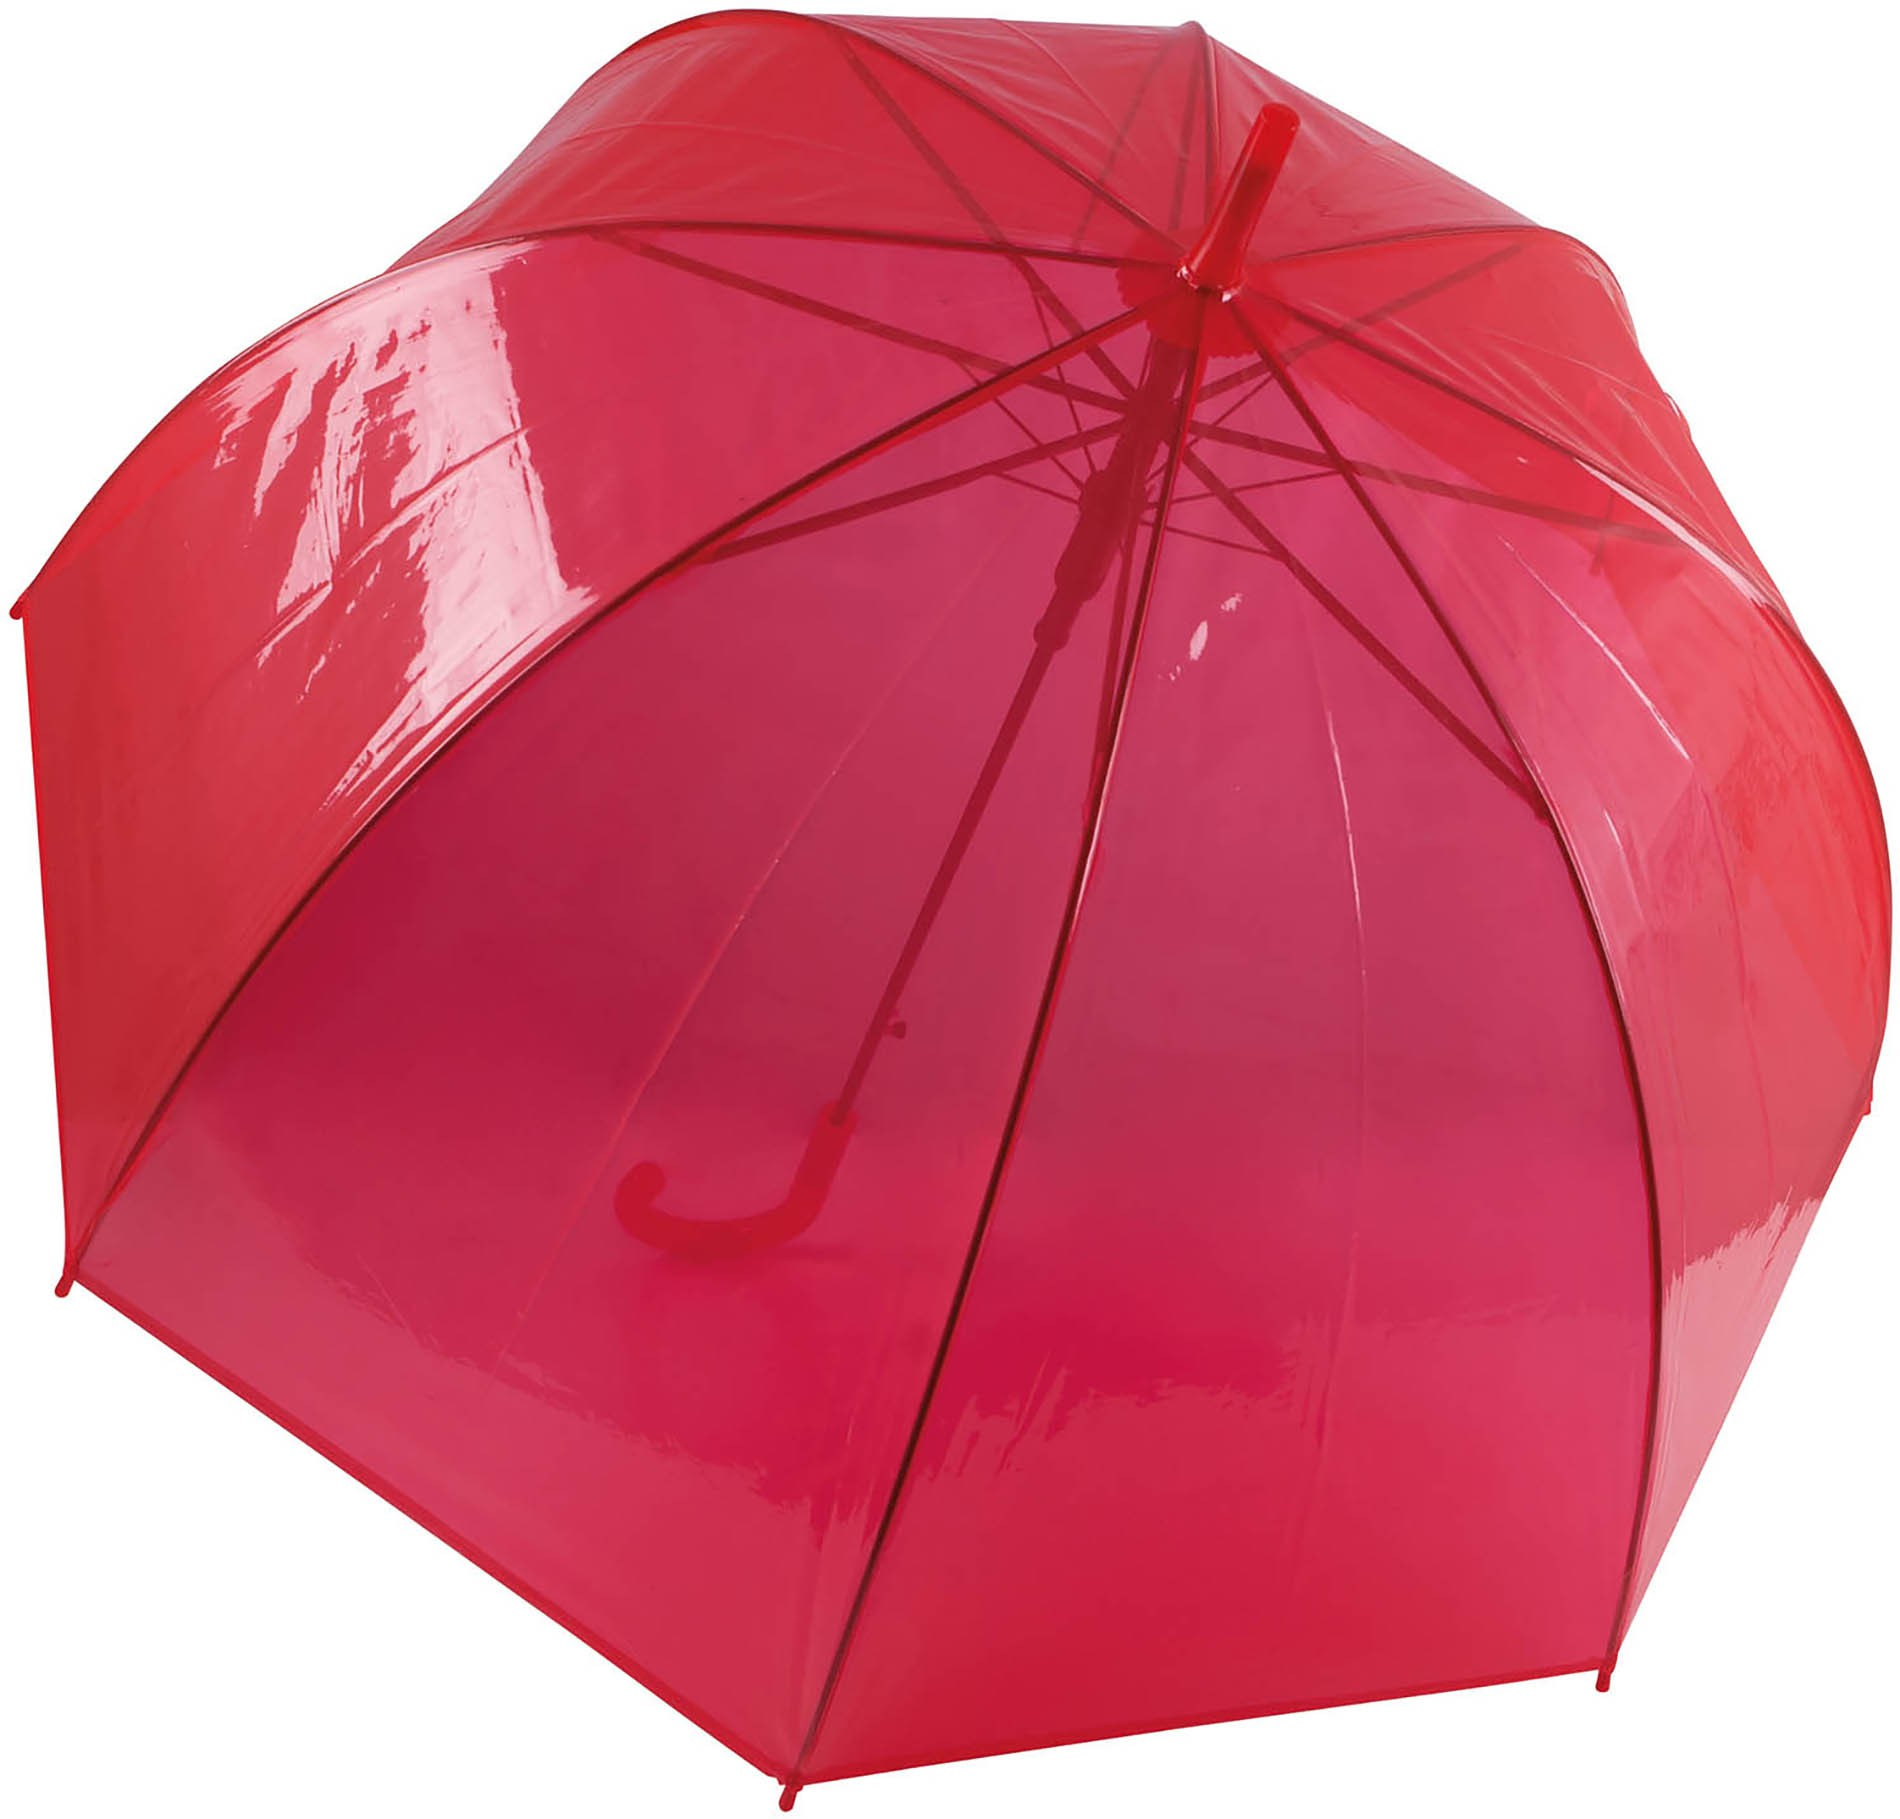 Parapluie transparent rouge